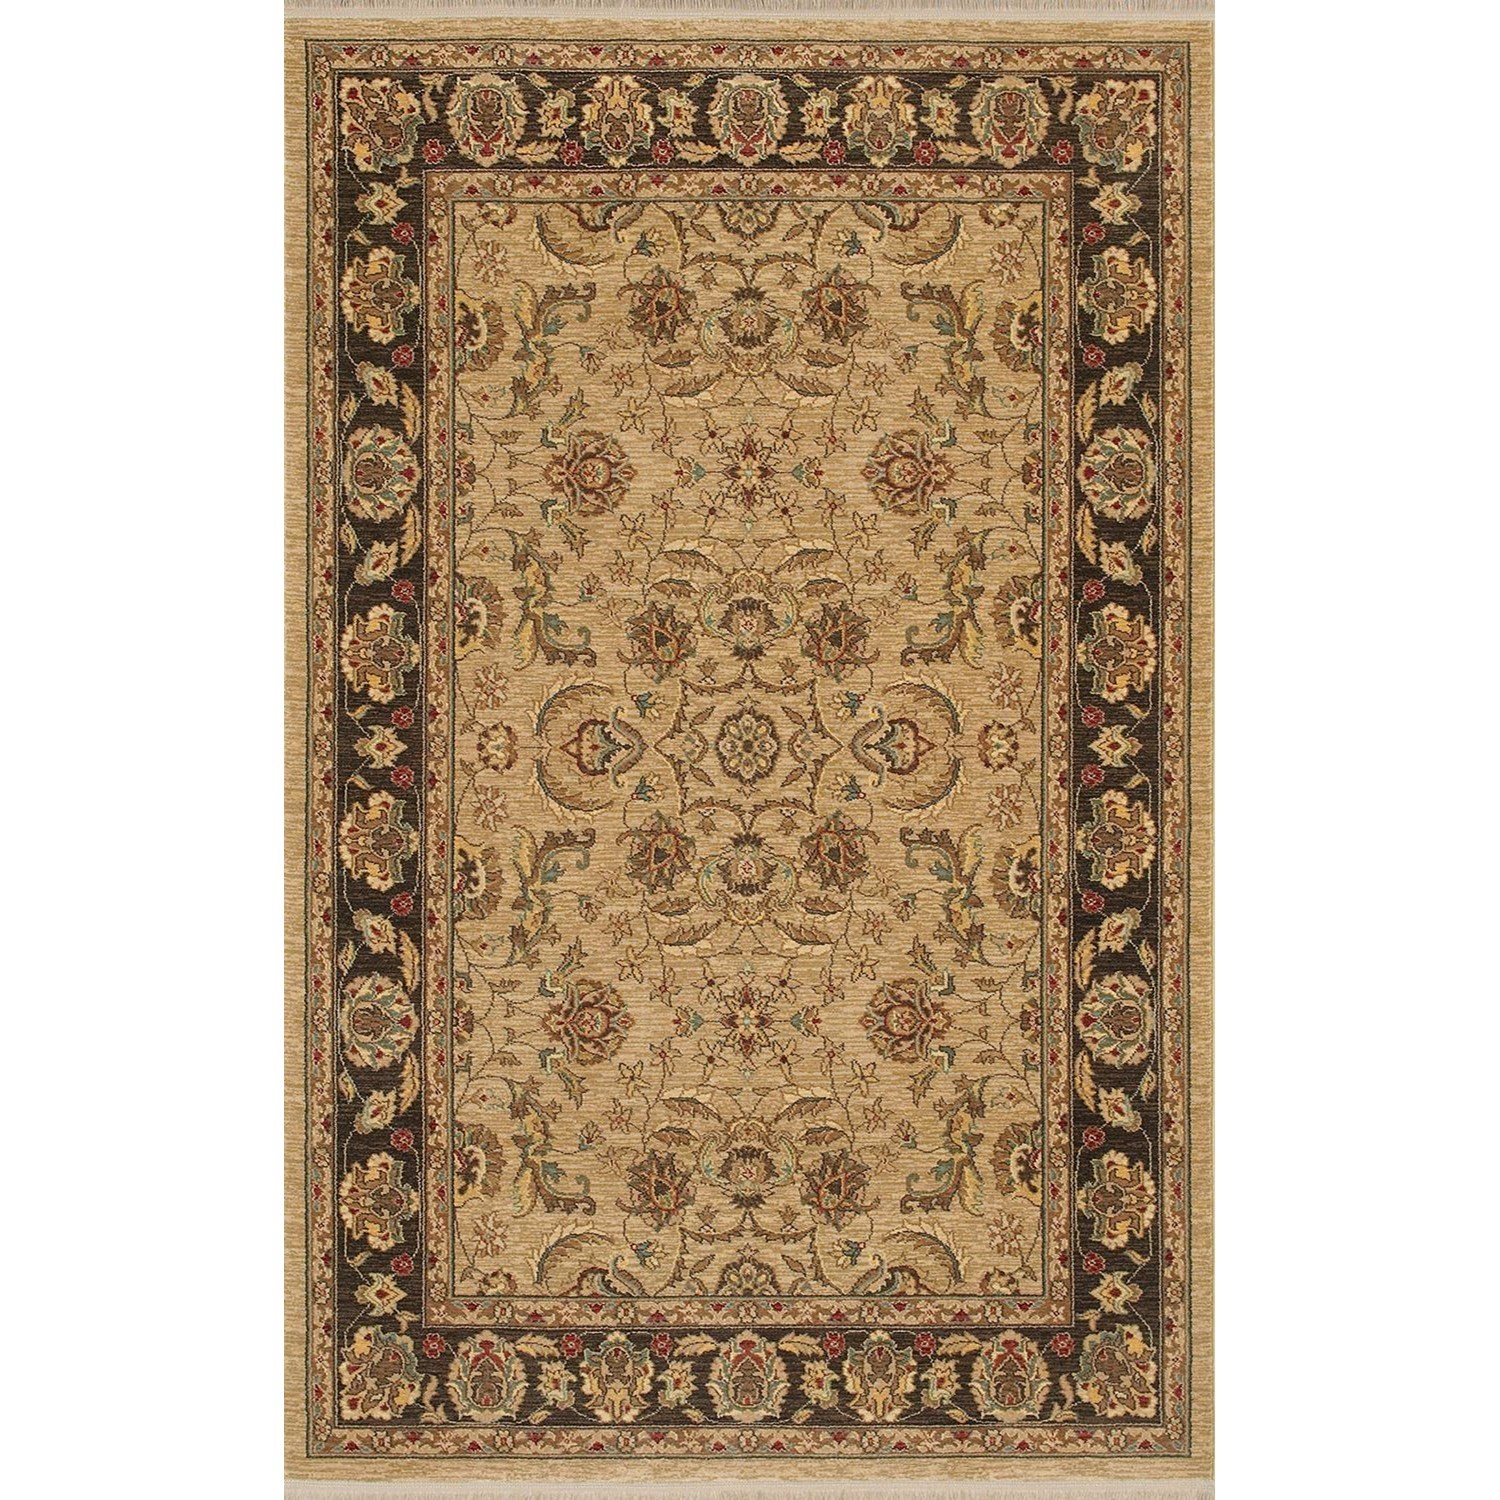 Ashara 5'9x9' Toscano Rug by Karastan Rugs at Darvin Furniture